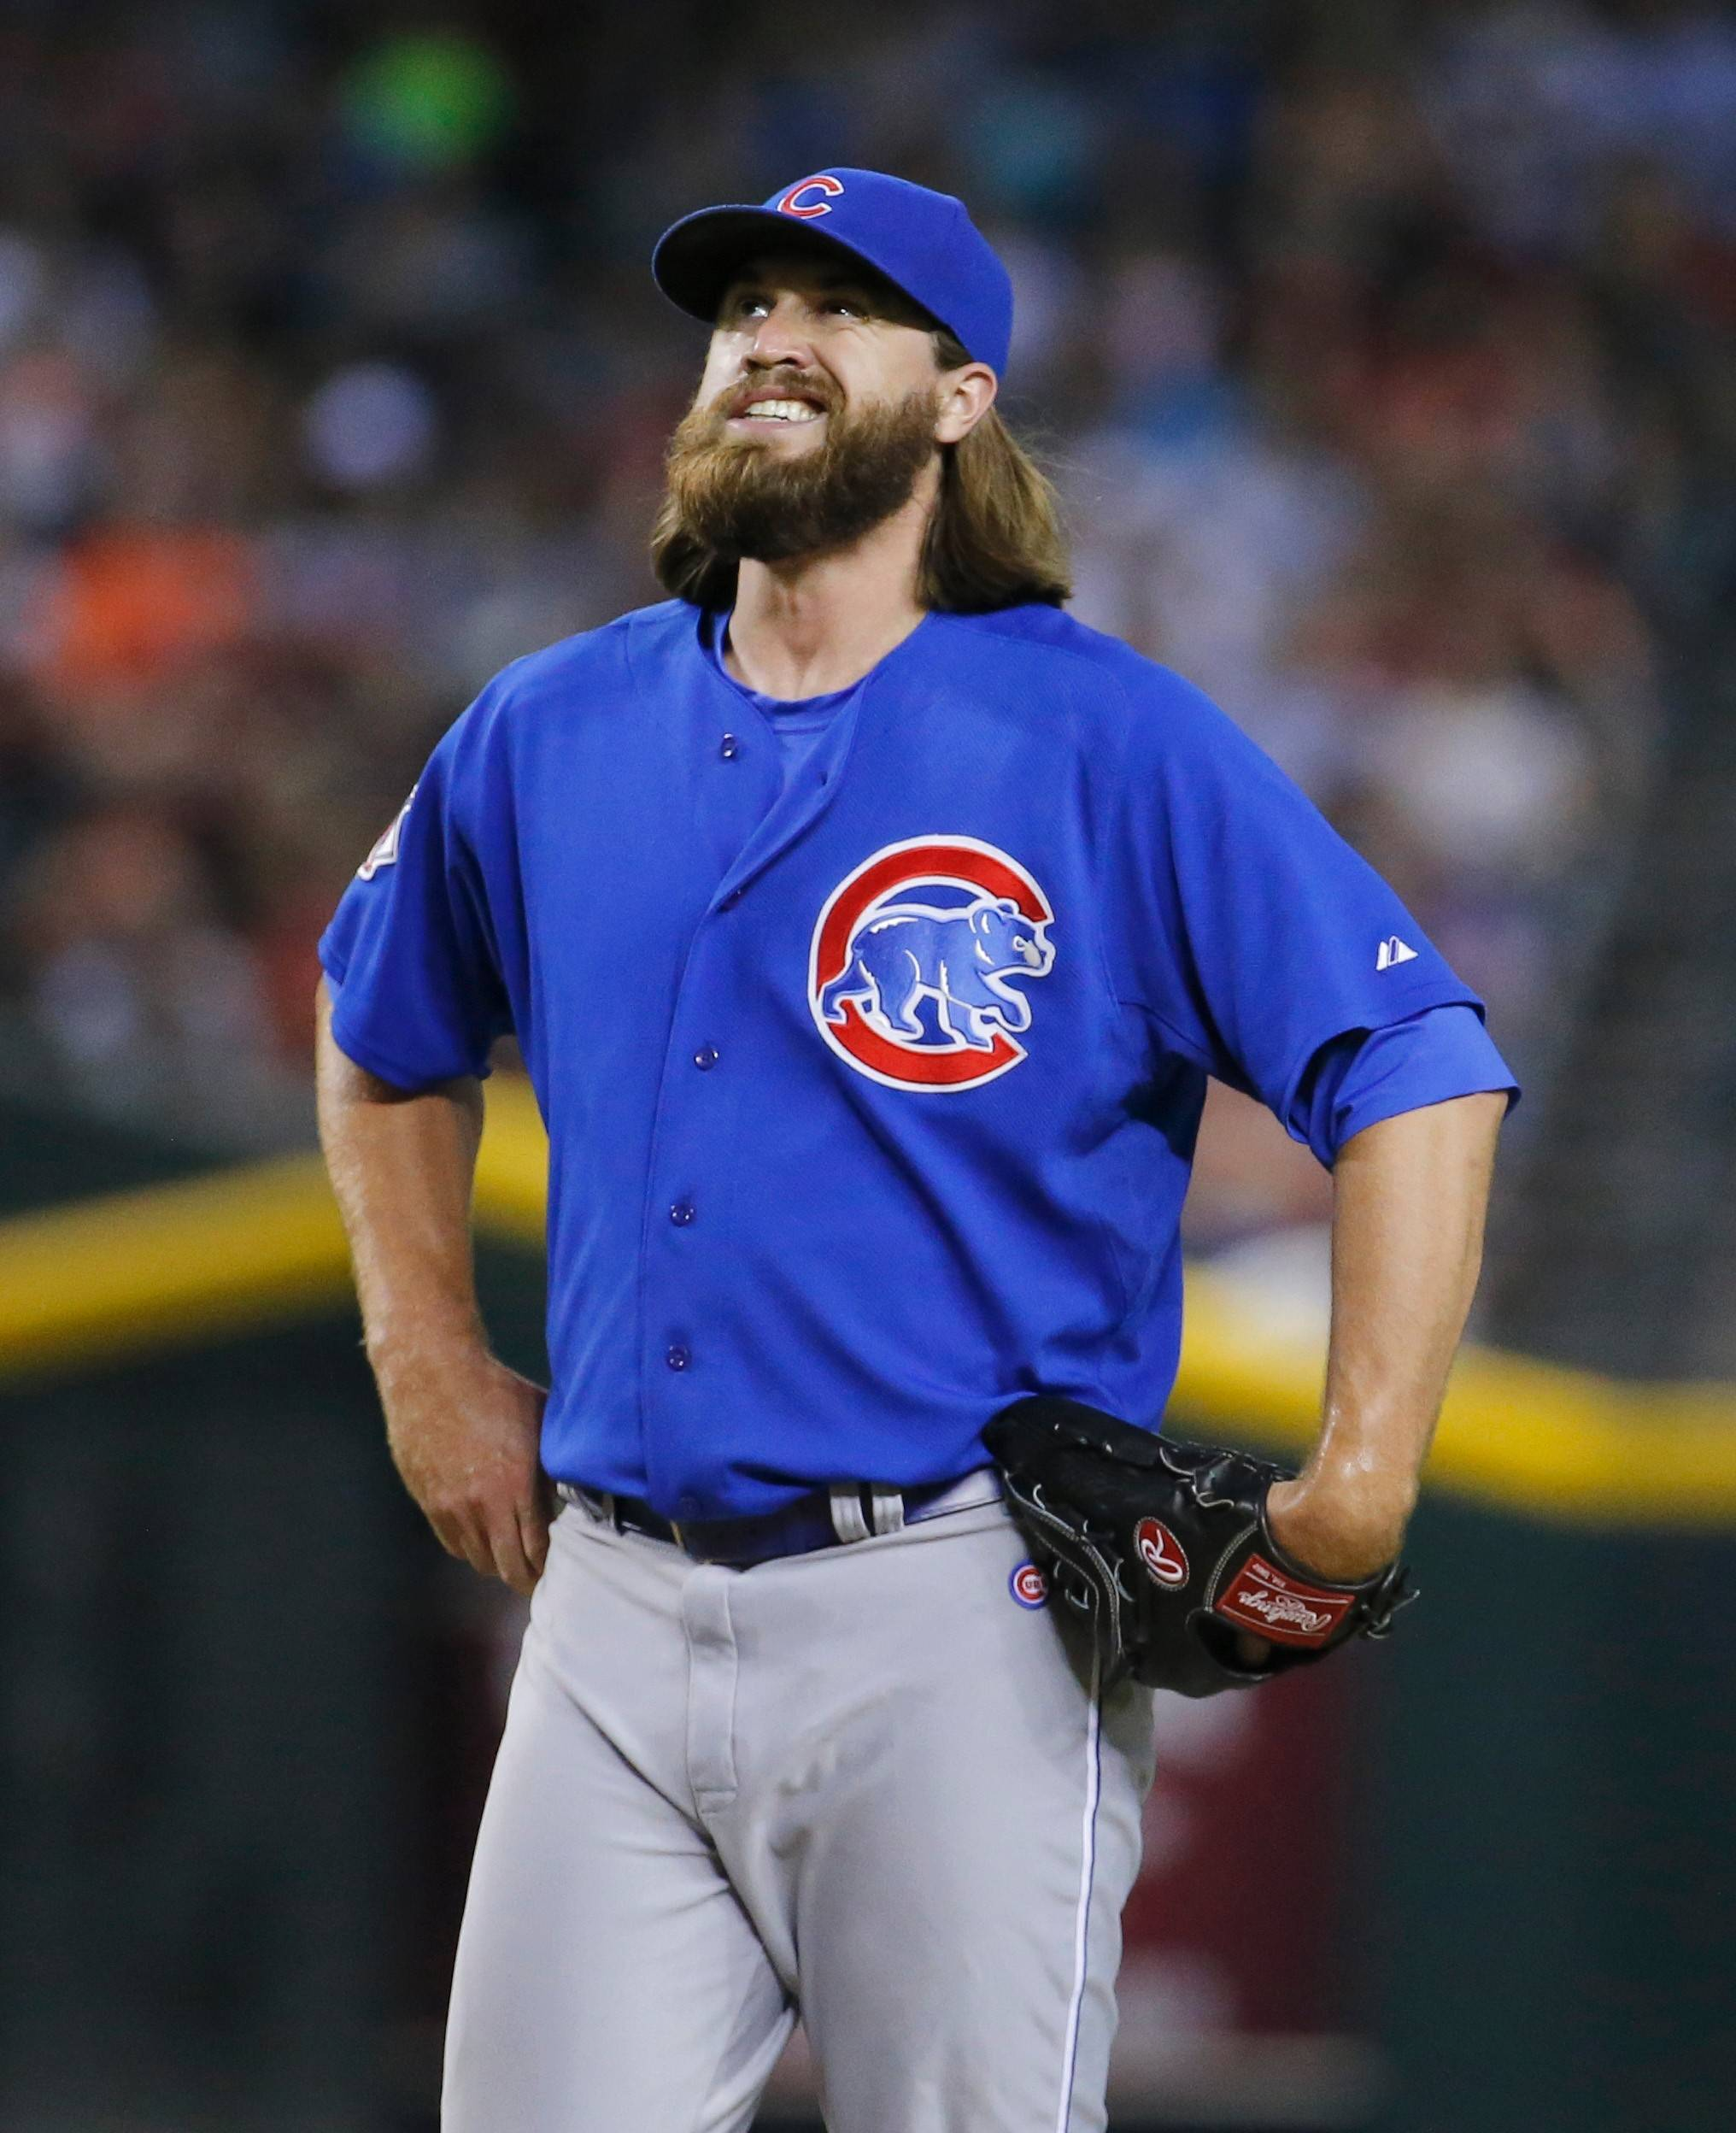 Cubs' bullpen needs some relief